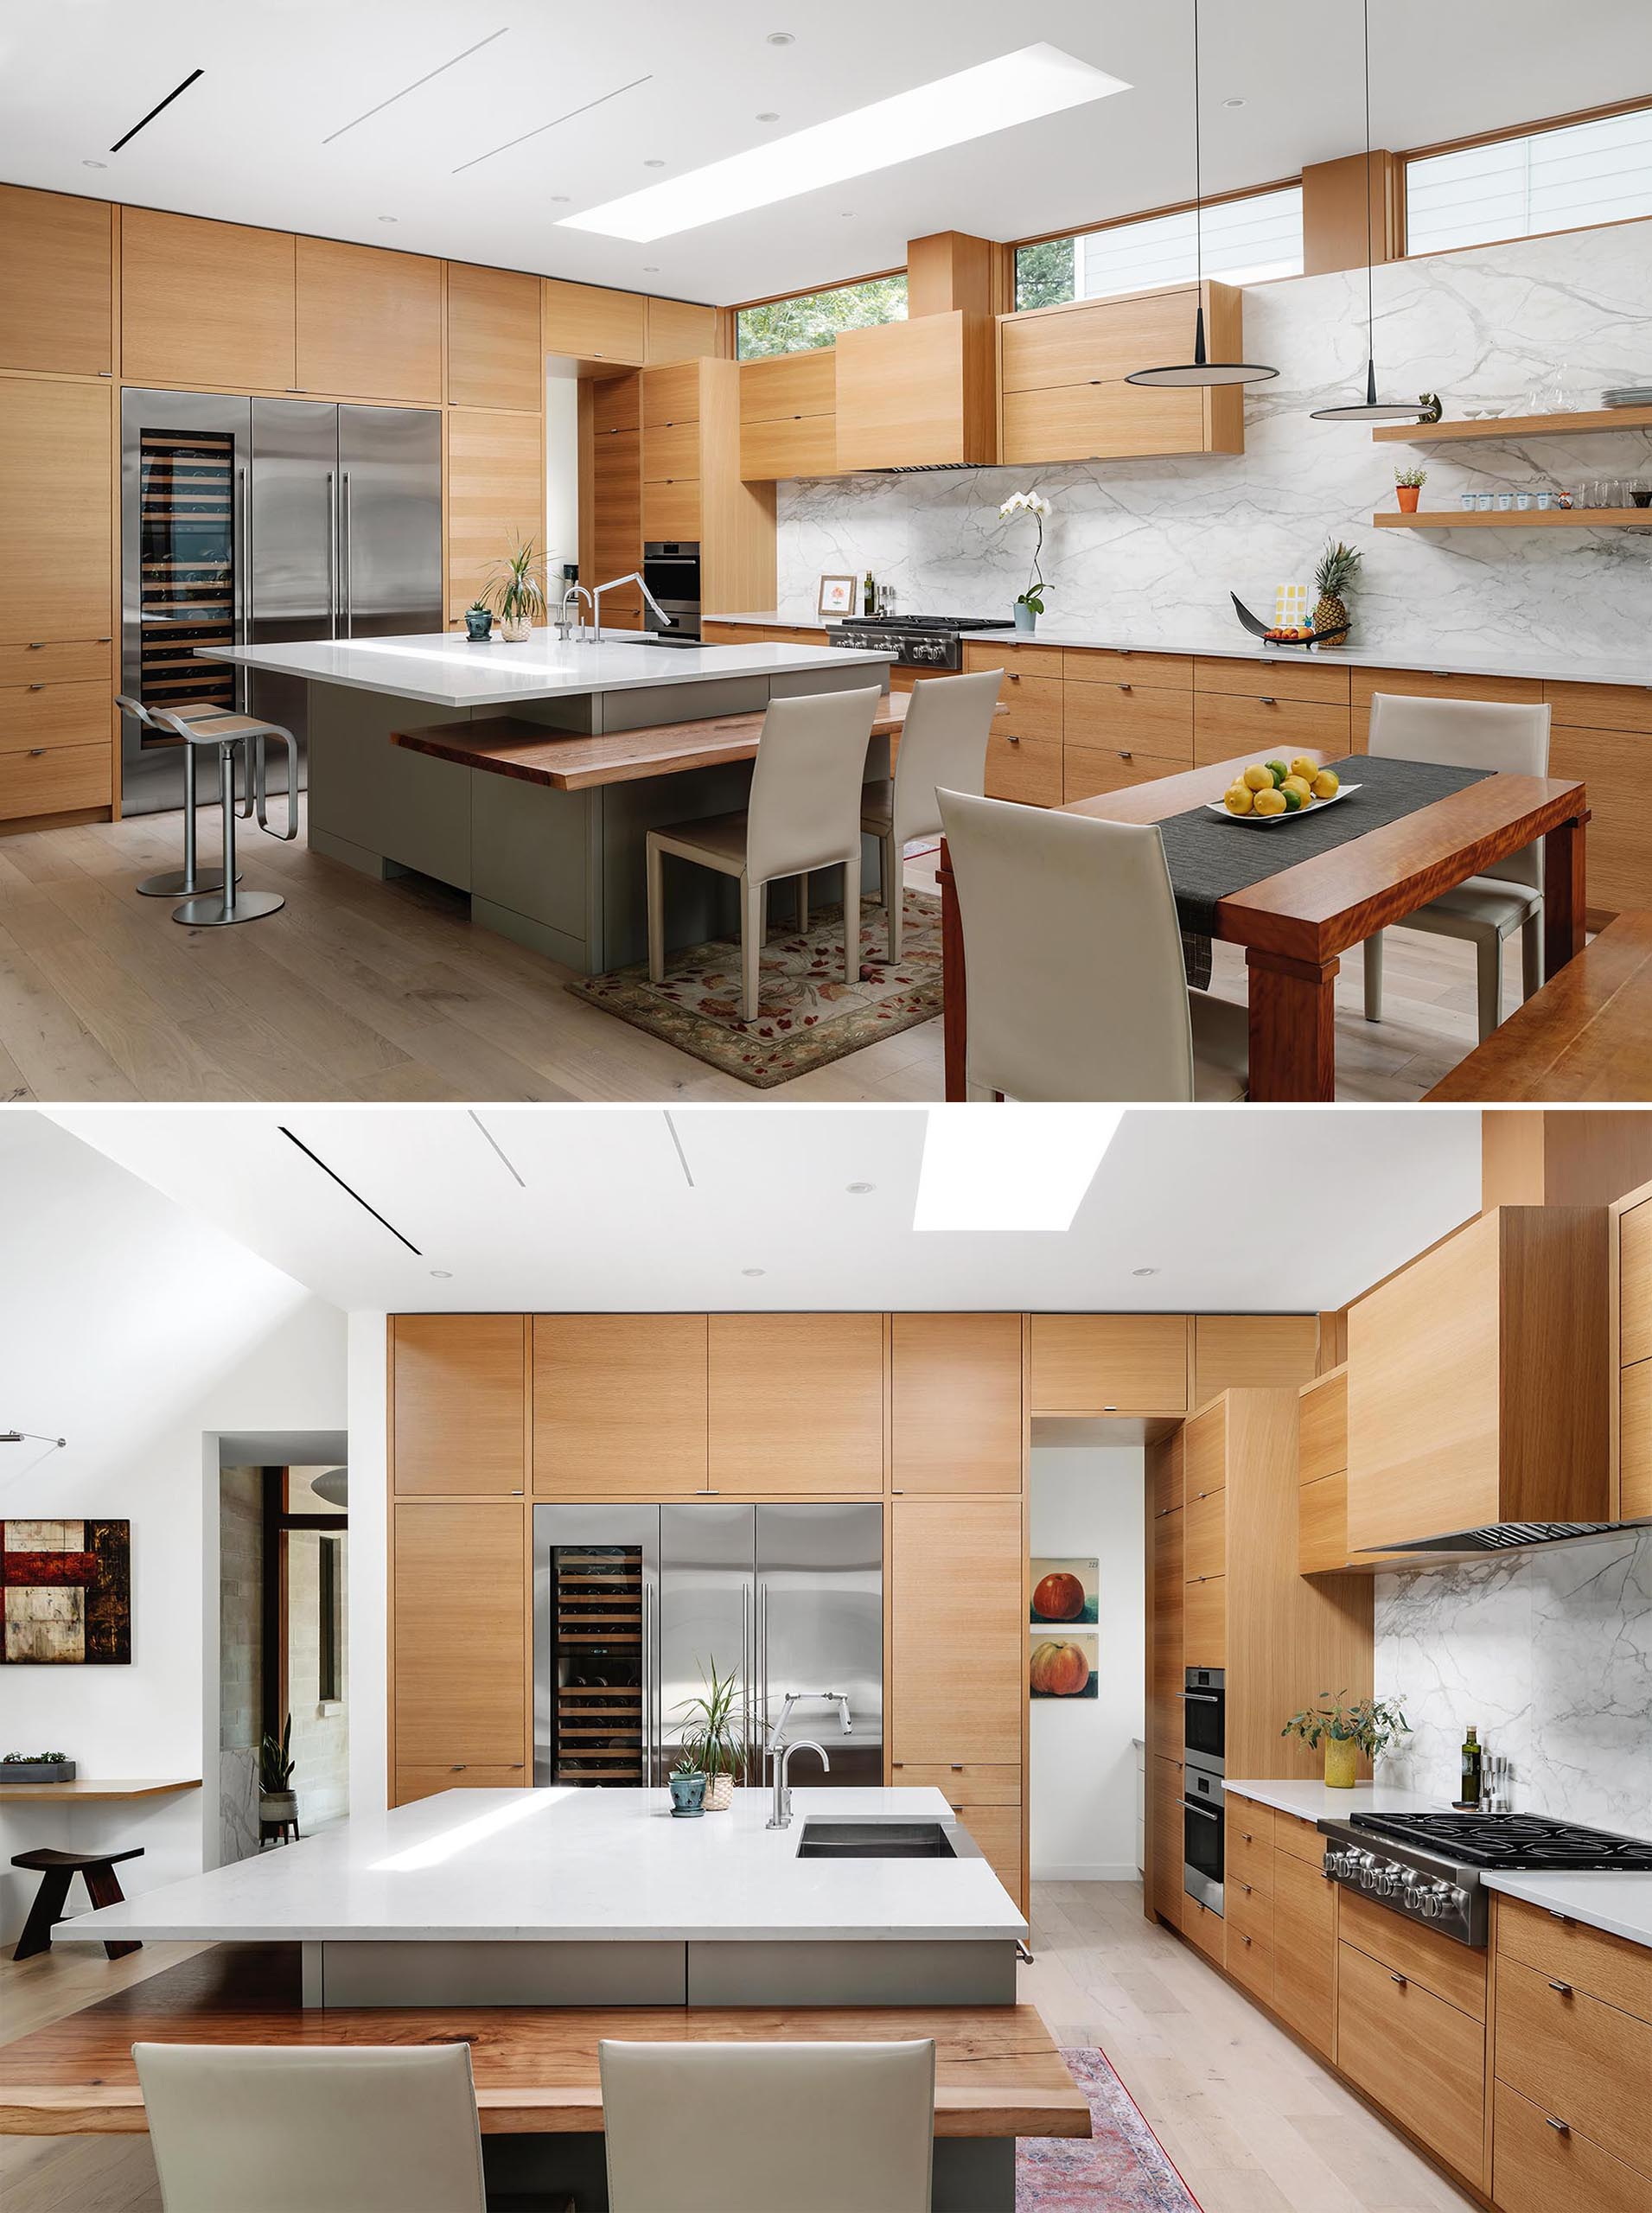 This modern kitchen has minimalist wood cabinets, a marble backsplash, and a large island with a couple of different seating options.